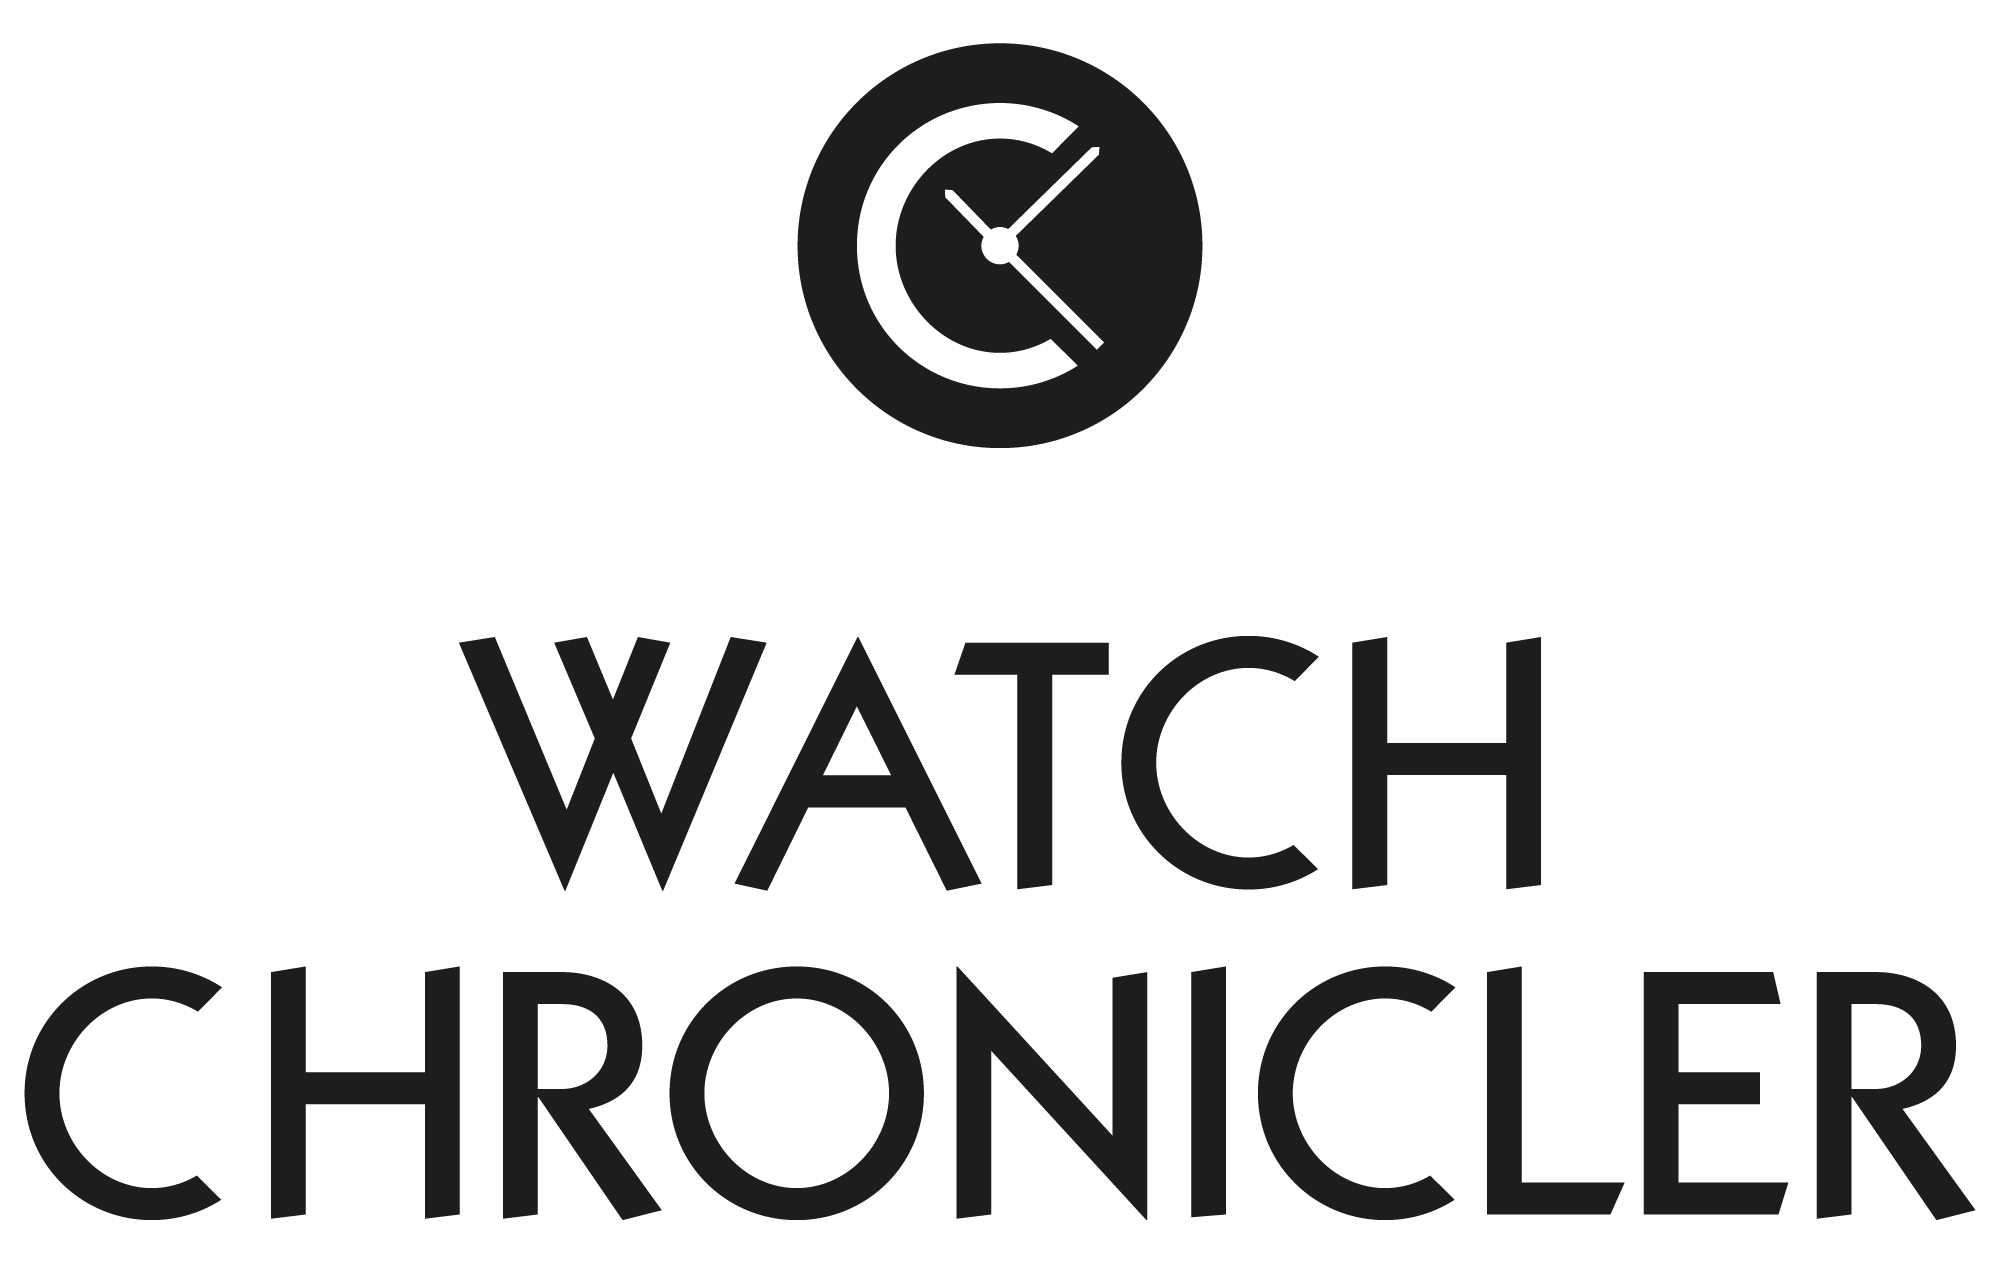 Watch Chronicler